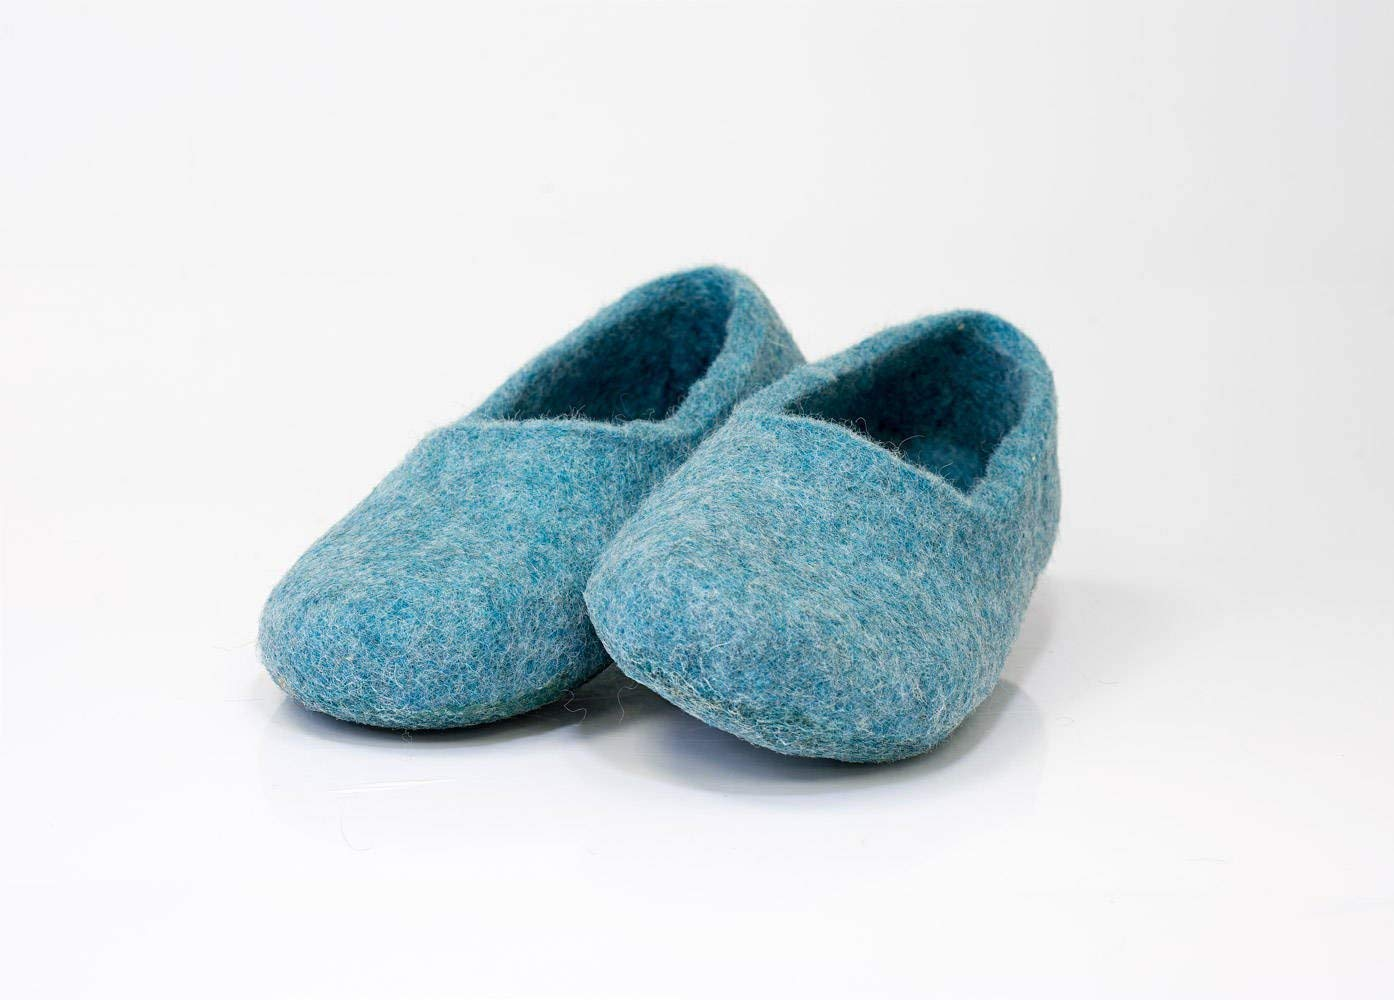 ea2679efaf7ce Cheap Felted Wool Pillows, find Felted Wool Pillows deals on line at ...